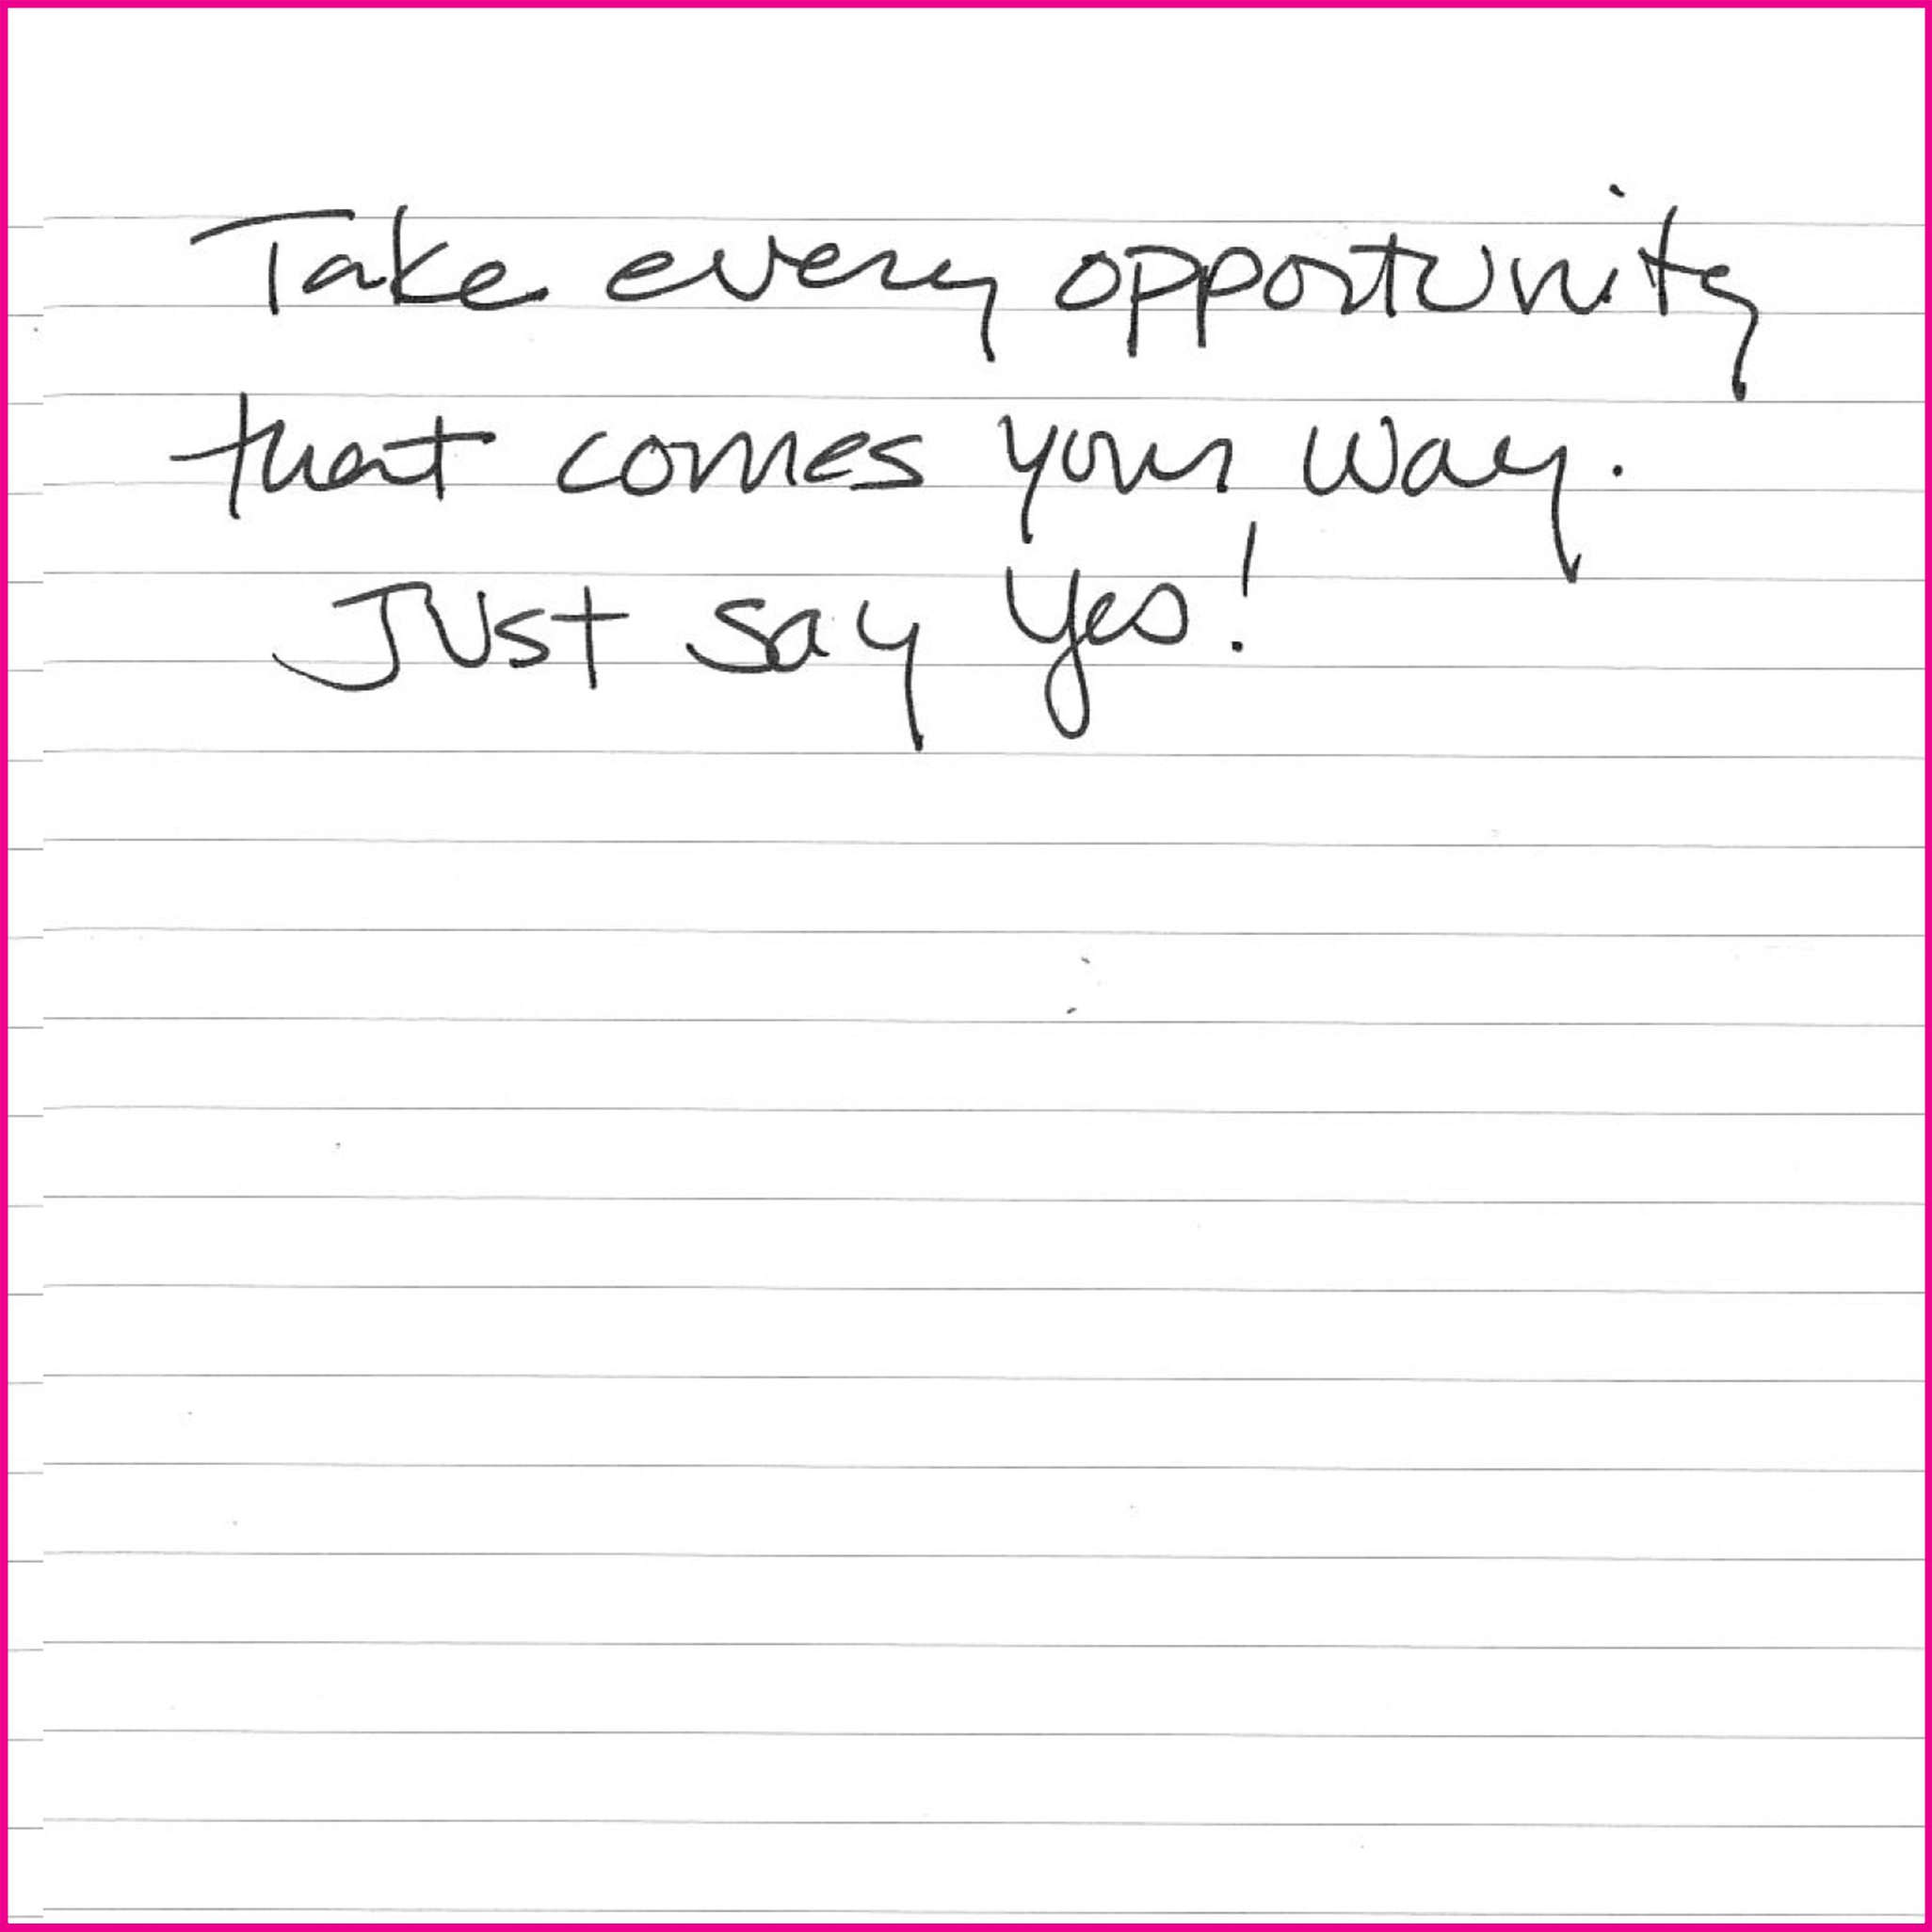 Take every opportunity that comes your way. Just say yes!